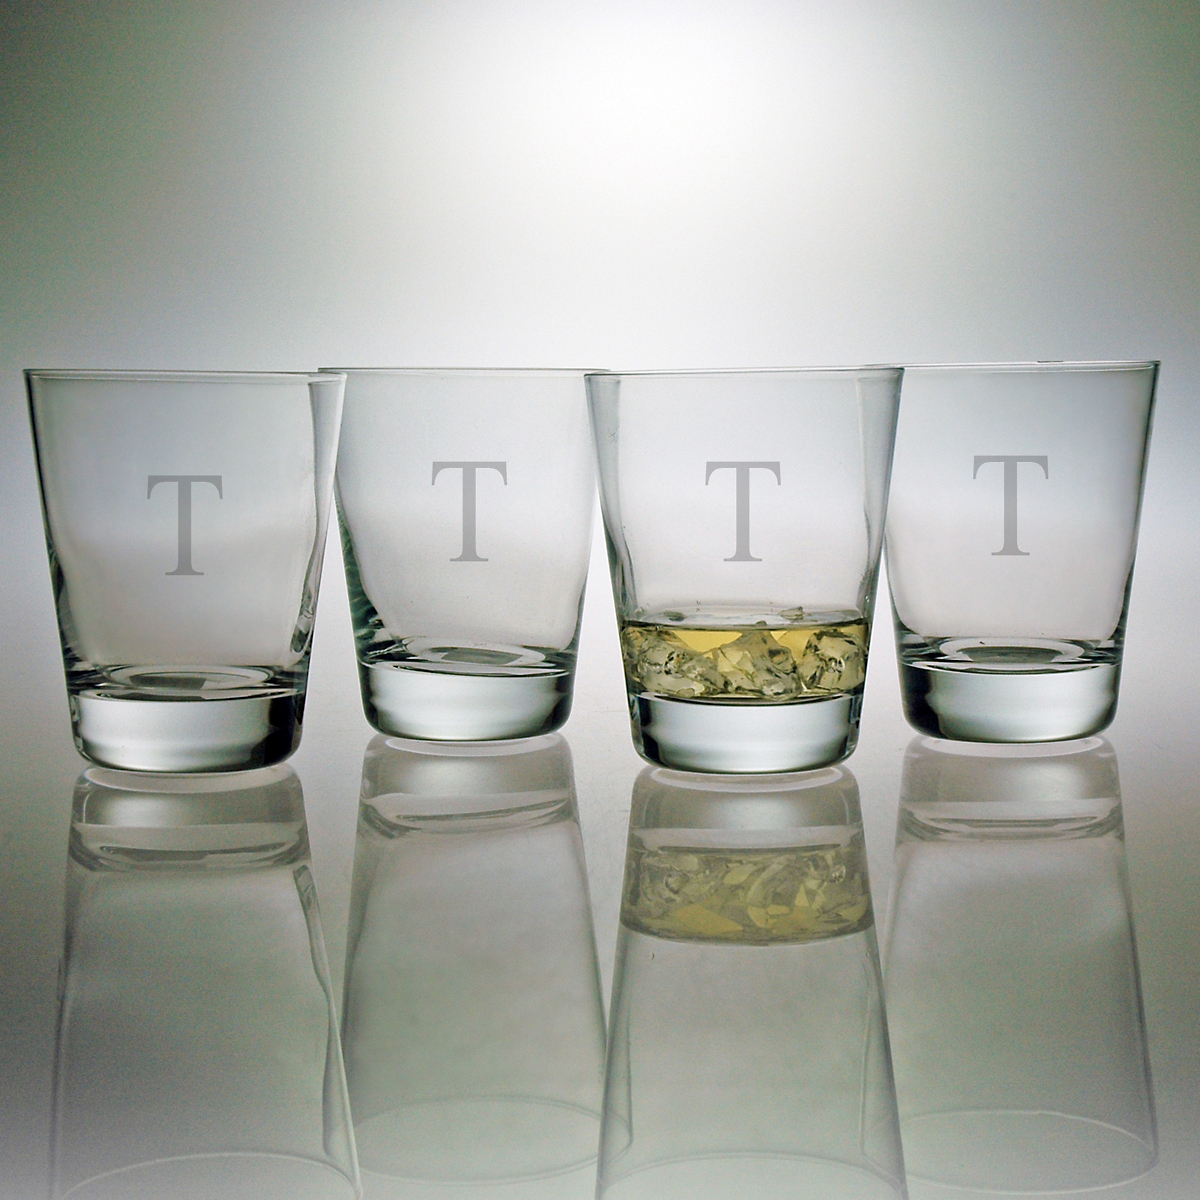 Personalized Double Old Fashioned Glasses, Set of 4